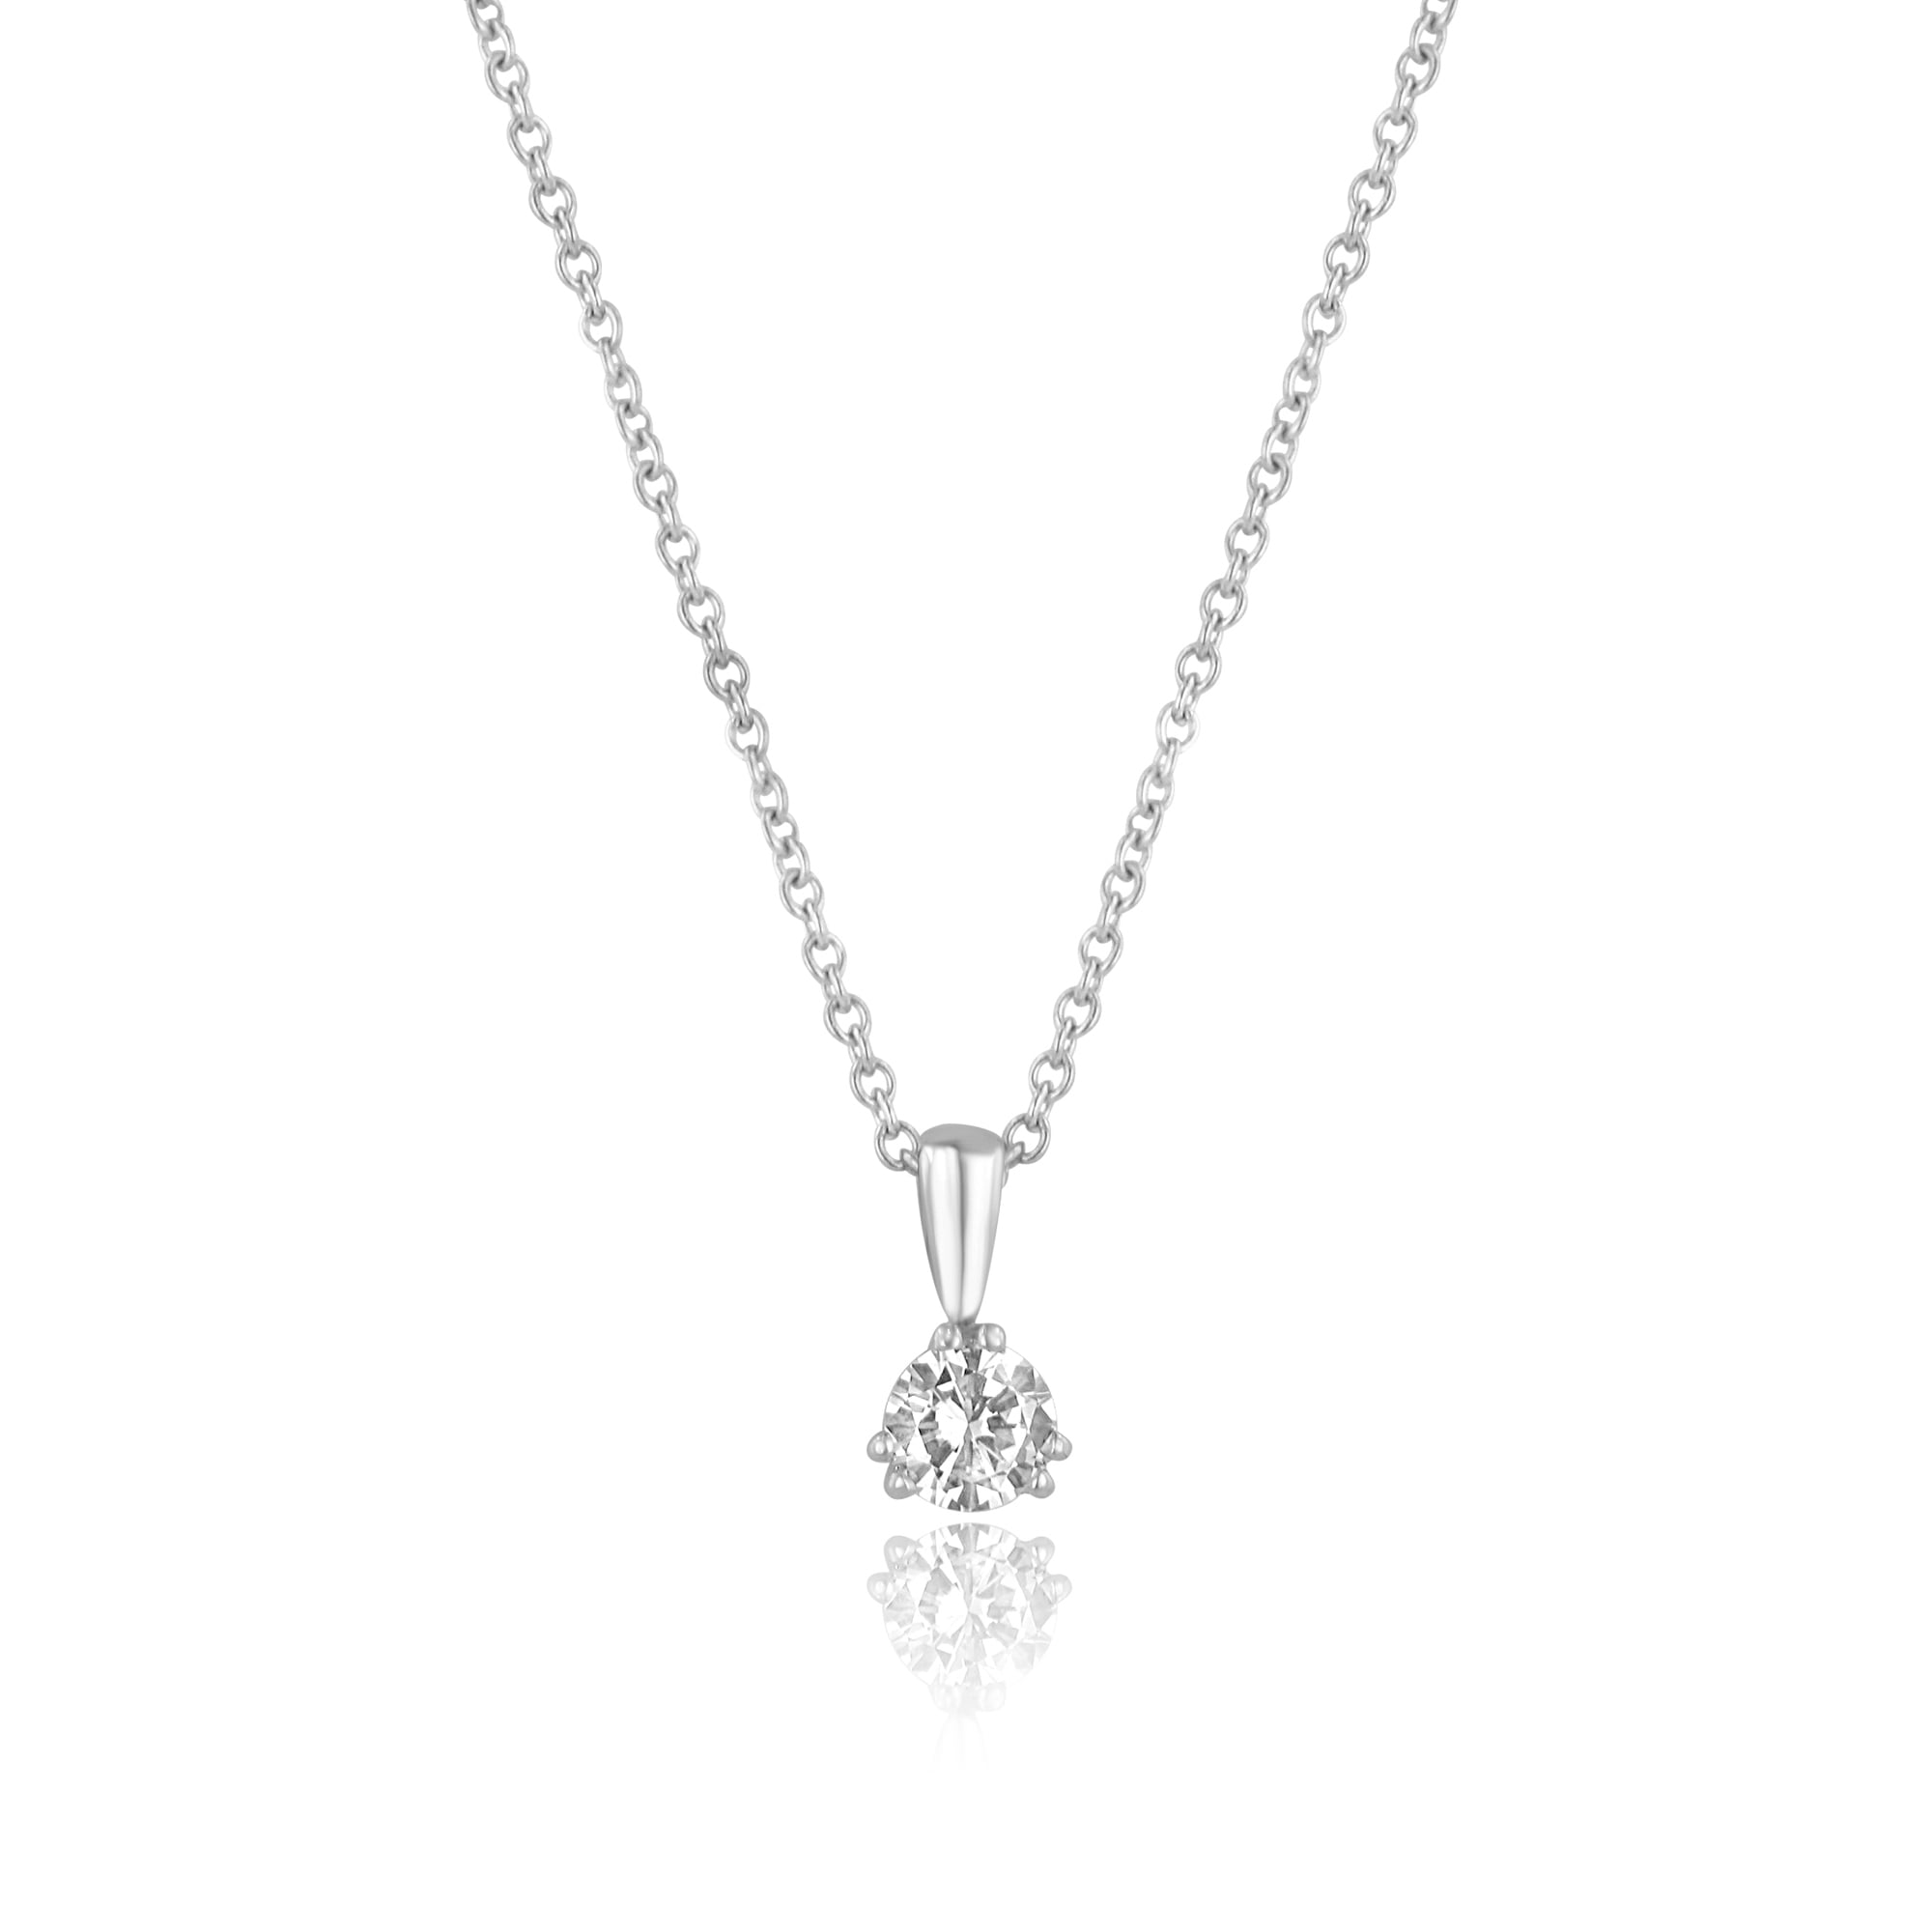 degem solitaire encordia forevermark necklace pave pendant diamond